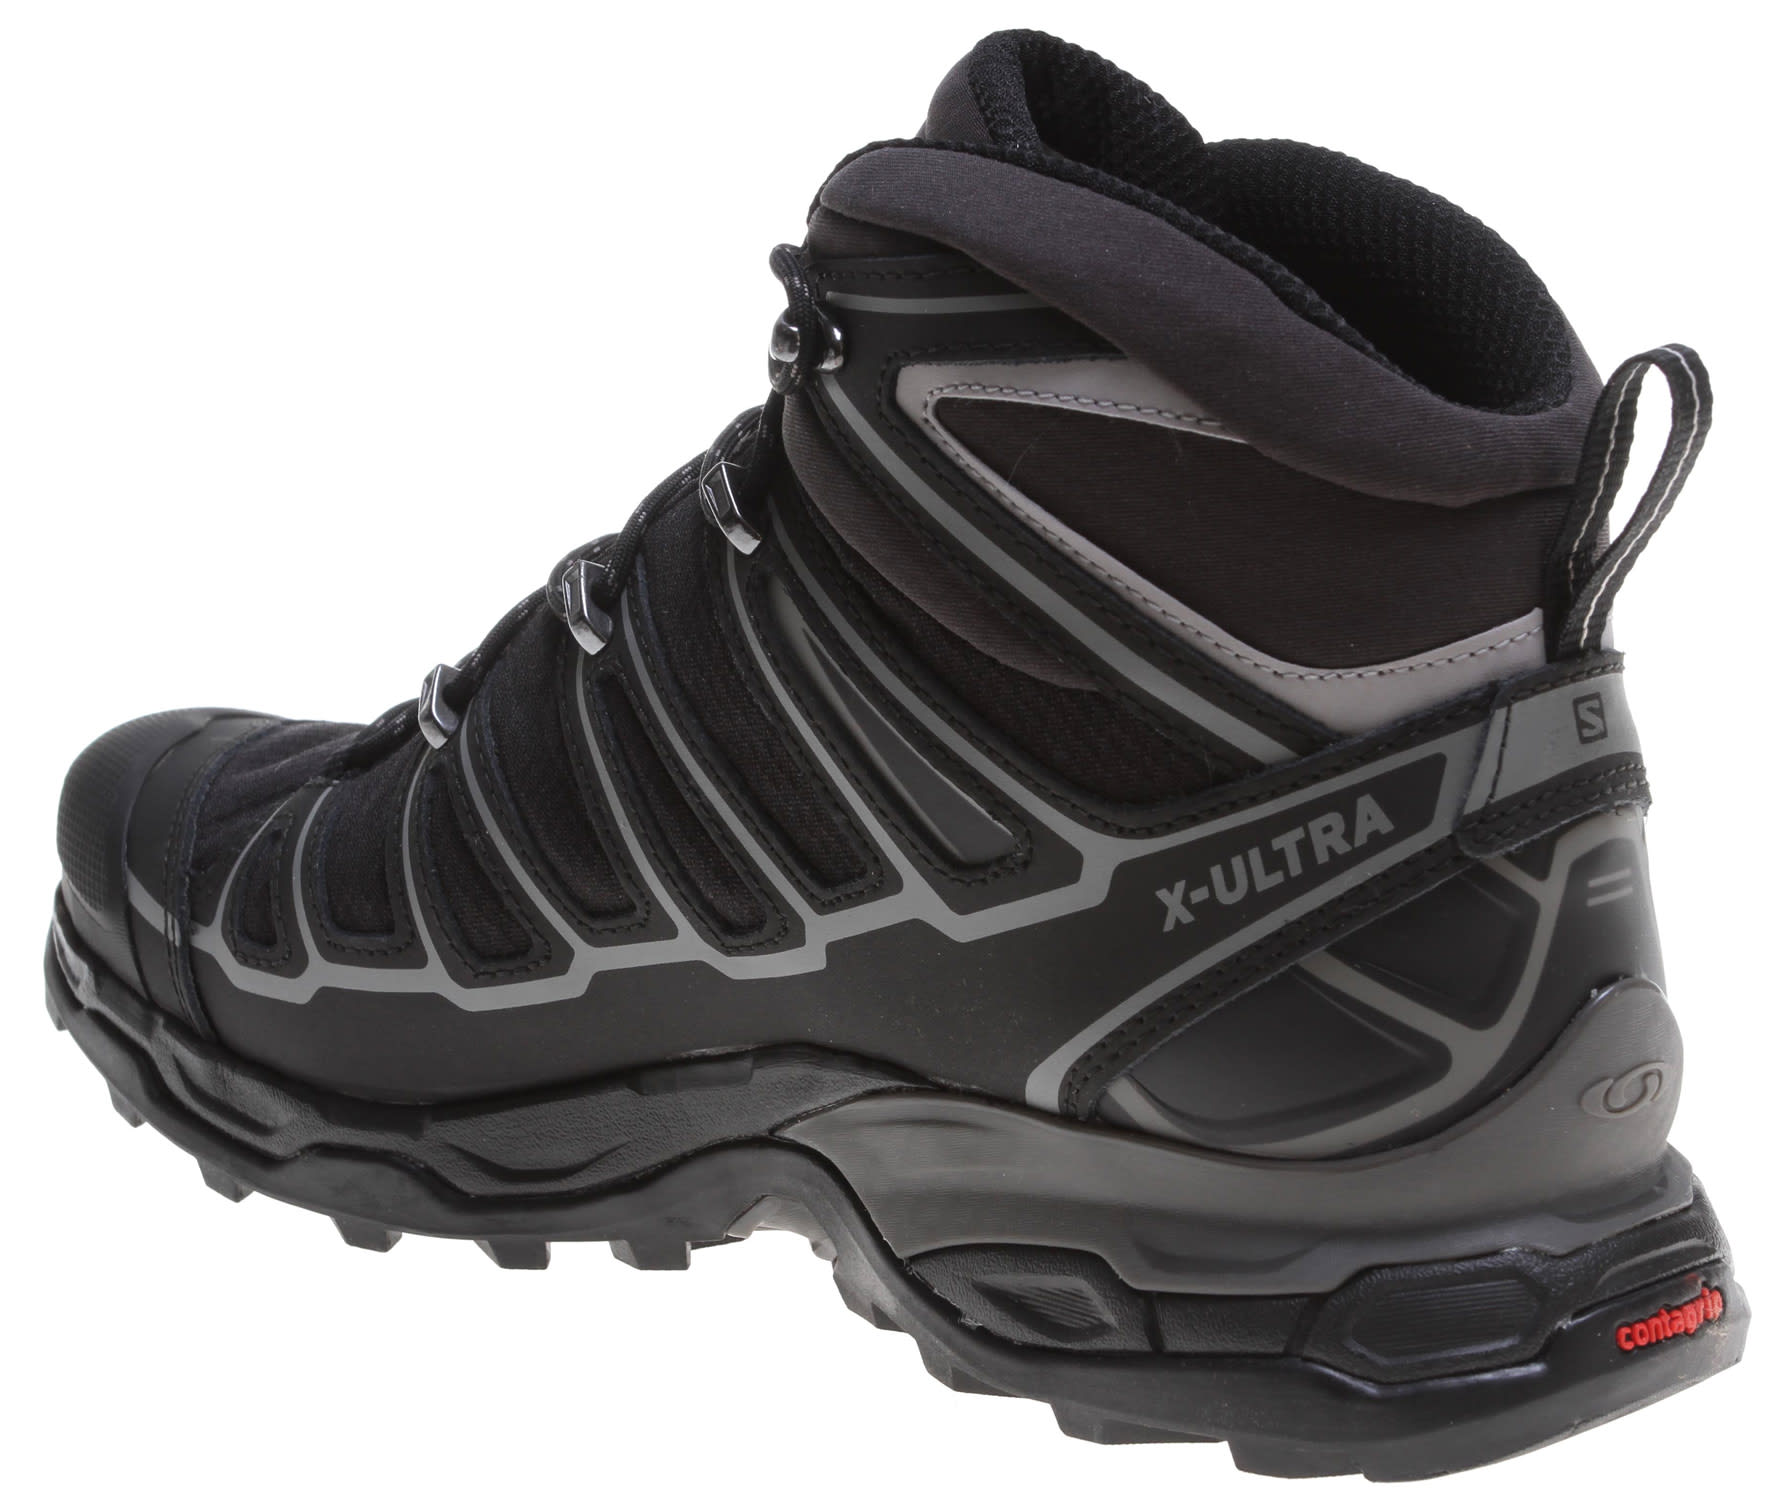 quality design f46cf 07917 Salomon X Ultra Mid 2 GTX Hiking Boots